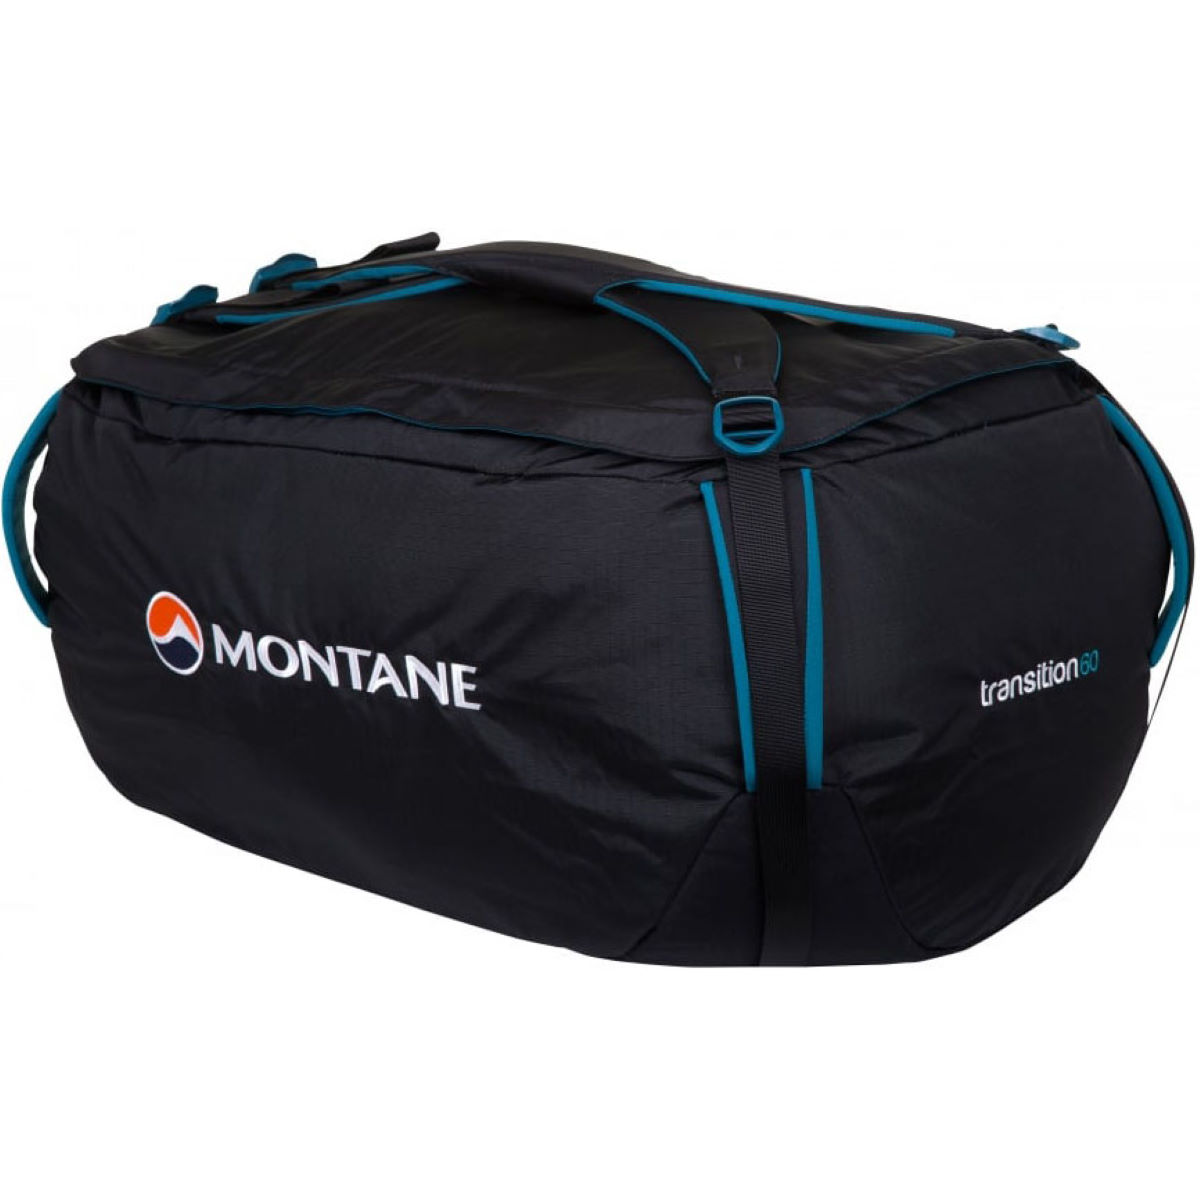 Montane Montane Transition 60 Duffle Bag   Transition Bags